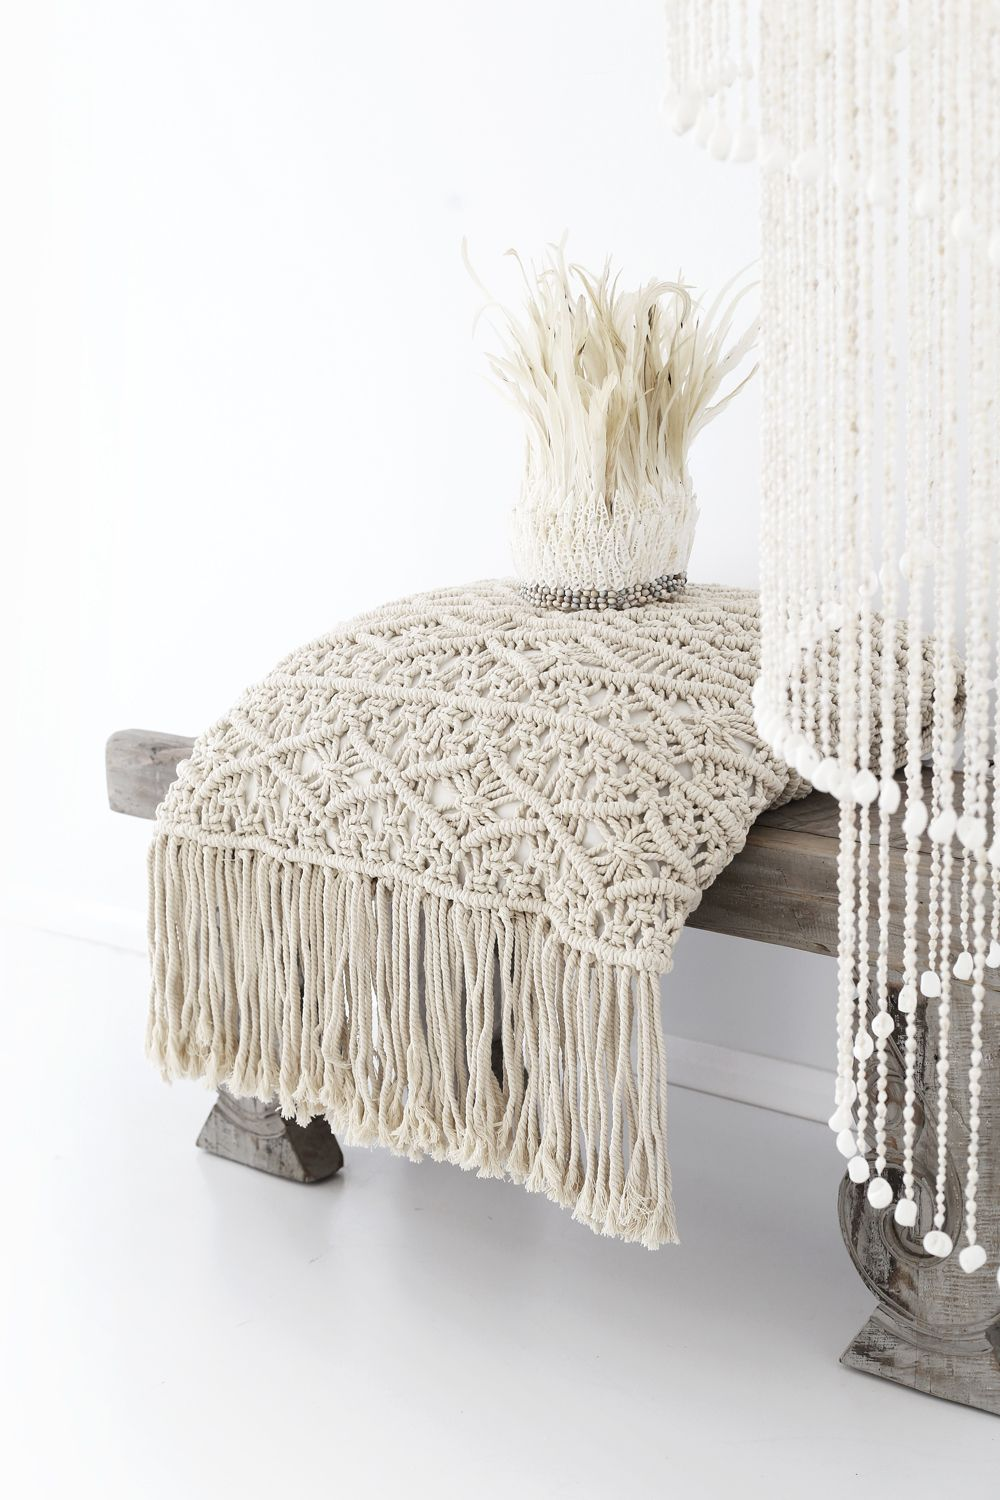 ... iIndrani macrame cushion & lalita feather crown | losari: http://www.losari.com.au/collections/throws ...